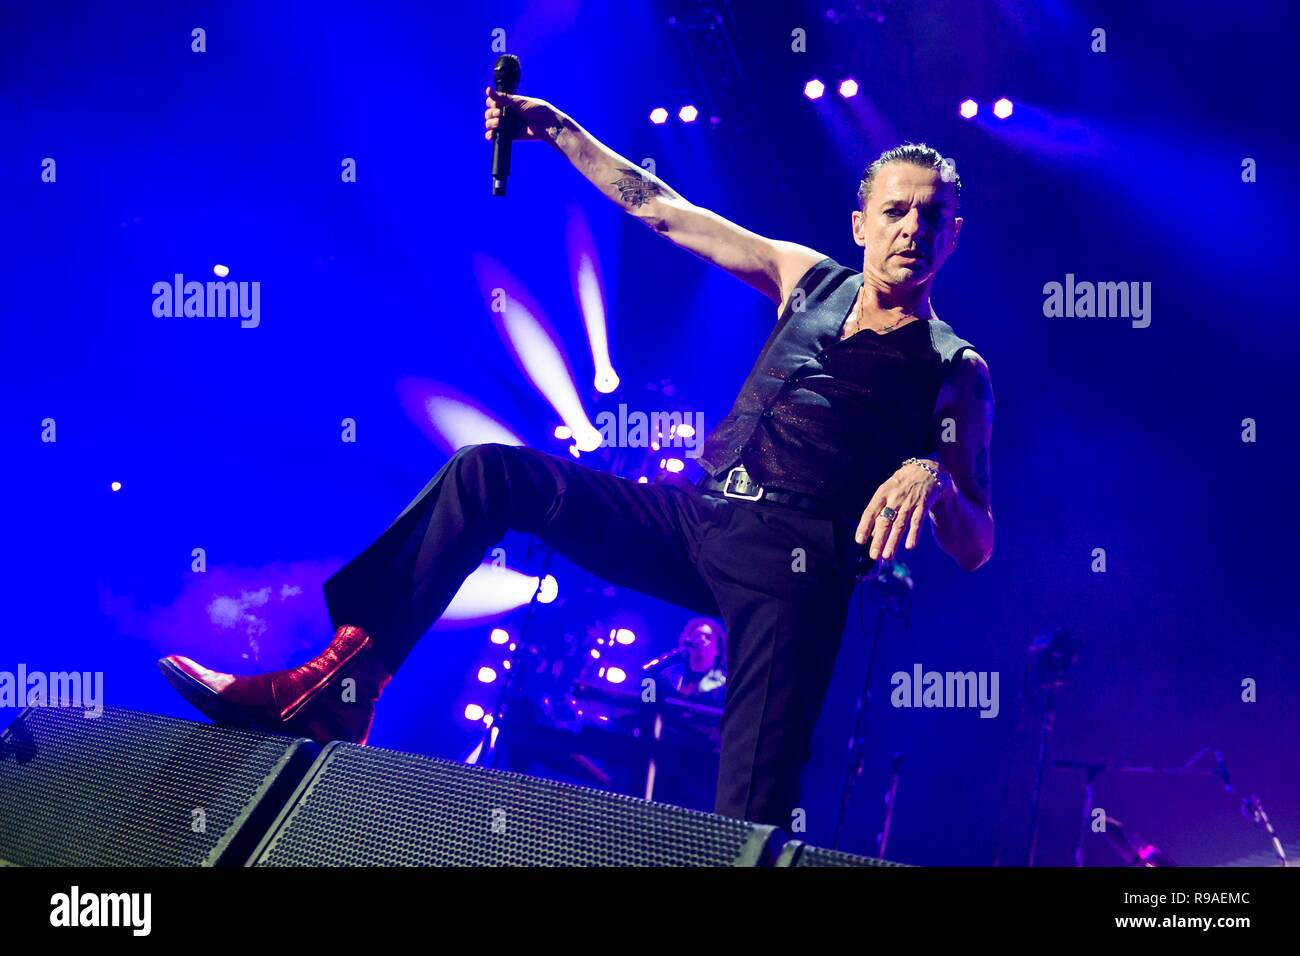 January 11, 2018 - The British synth rock and synth pop group Depeche Mode live on their Global Spirit Tour at the Barclaycard Arena in Hamburg. Singer and frontman Dave Gahan enjoys the show. | January, the 11th of 2018 - British Synth-Rock respectively Syntie-Pop Band Depeche Mode live on the Global Spirit Tour at the Barclaycard Arena in Hamburg, Germany. Singer and front man Dave Gahan enjoys the show. | usage worldwide - Stock Image